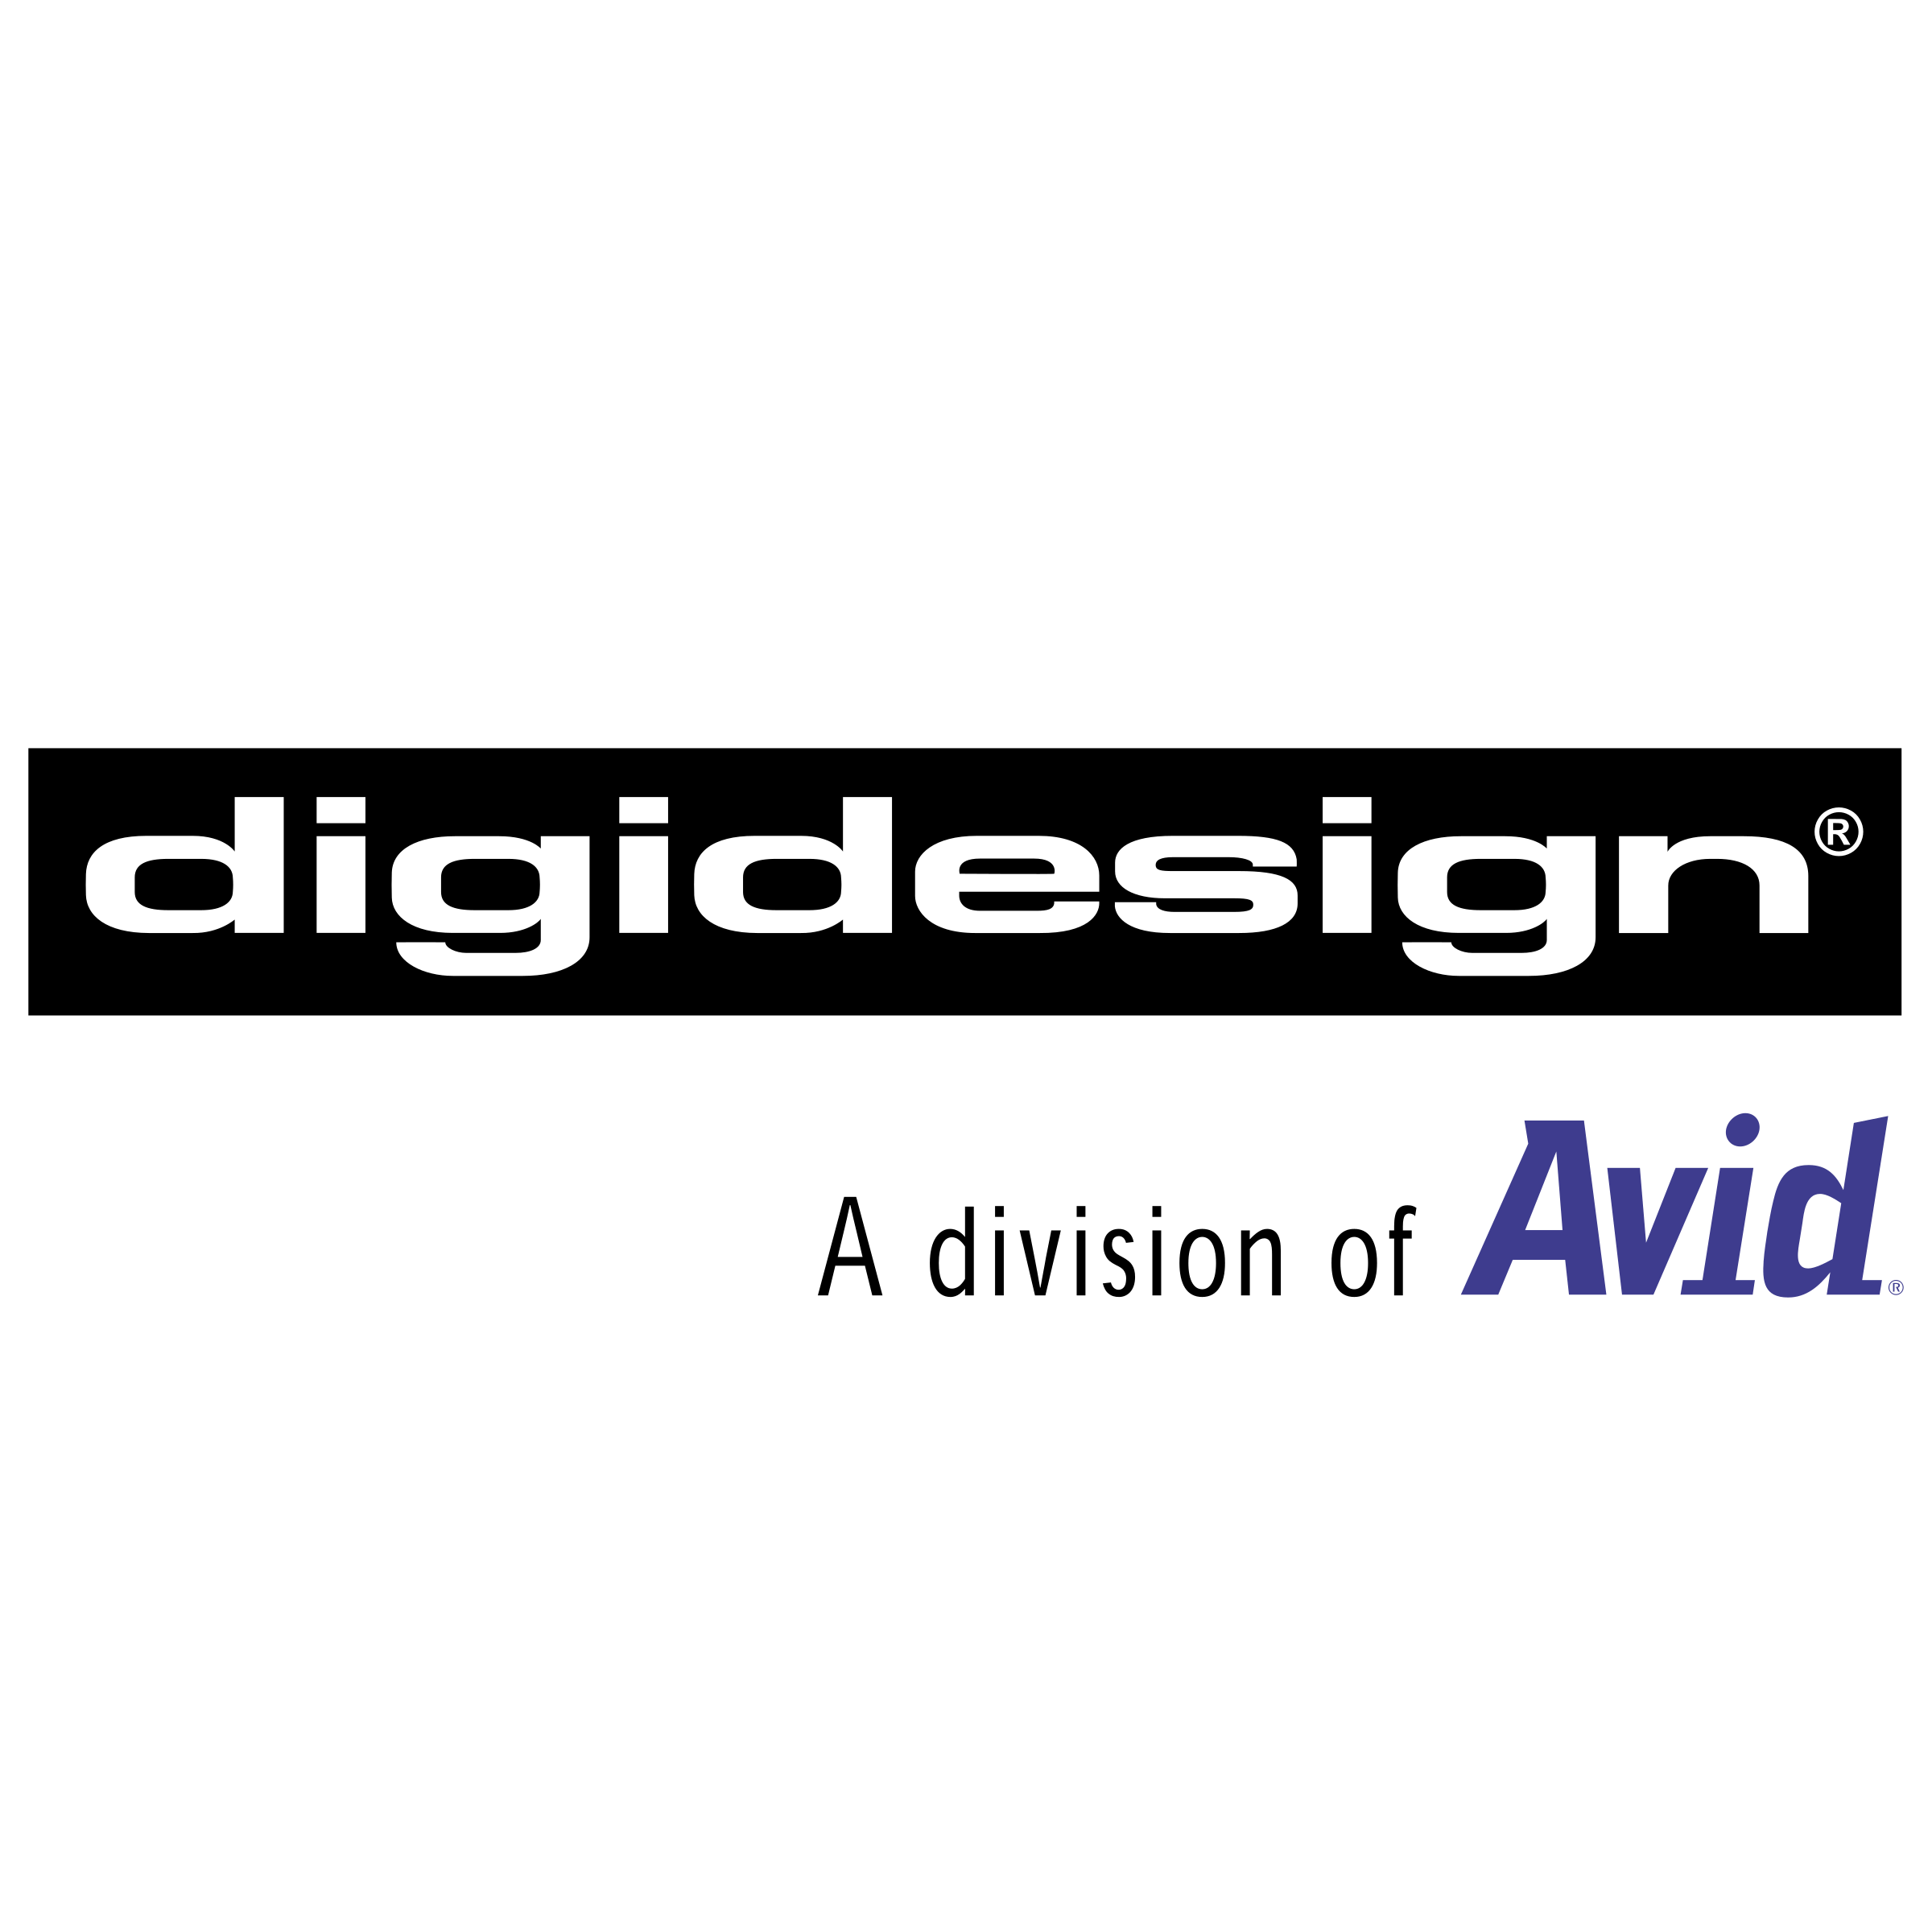 How to Update Digidesign Mbox 2 (AQVOX 1.0.3) Drivers